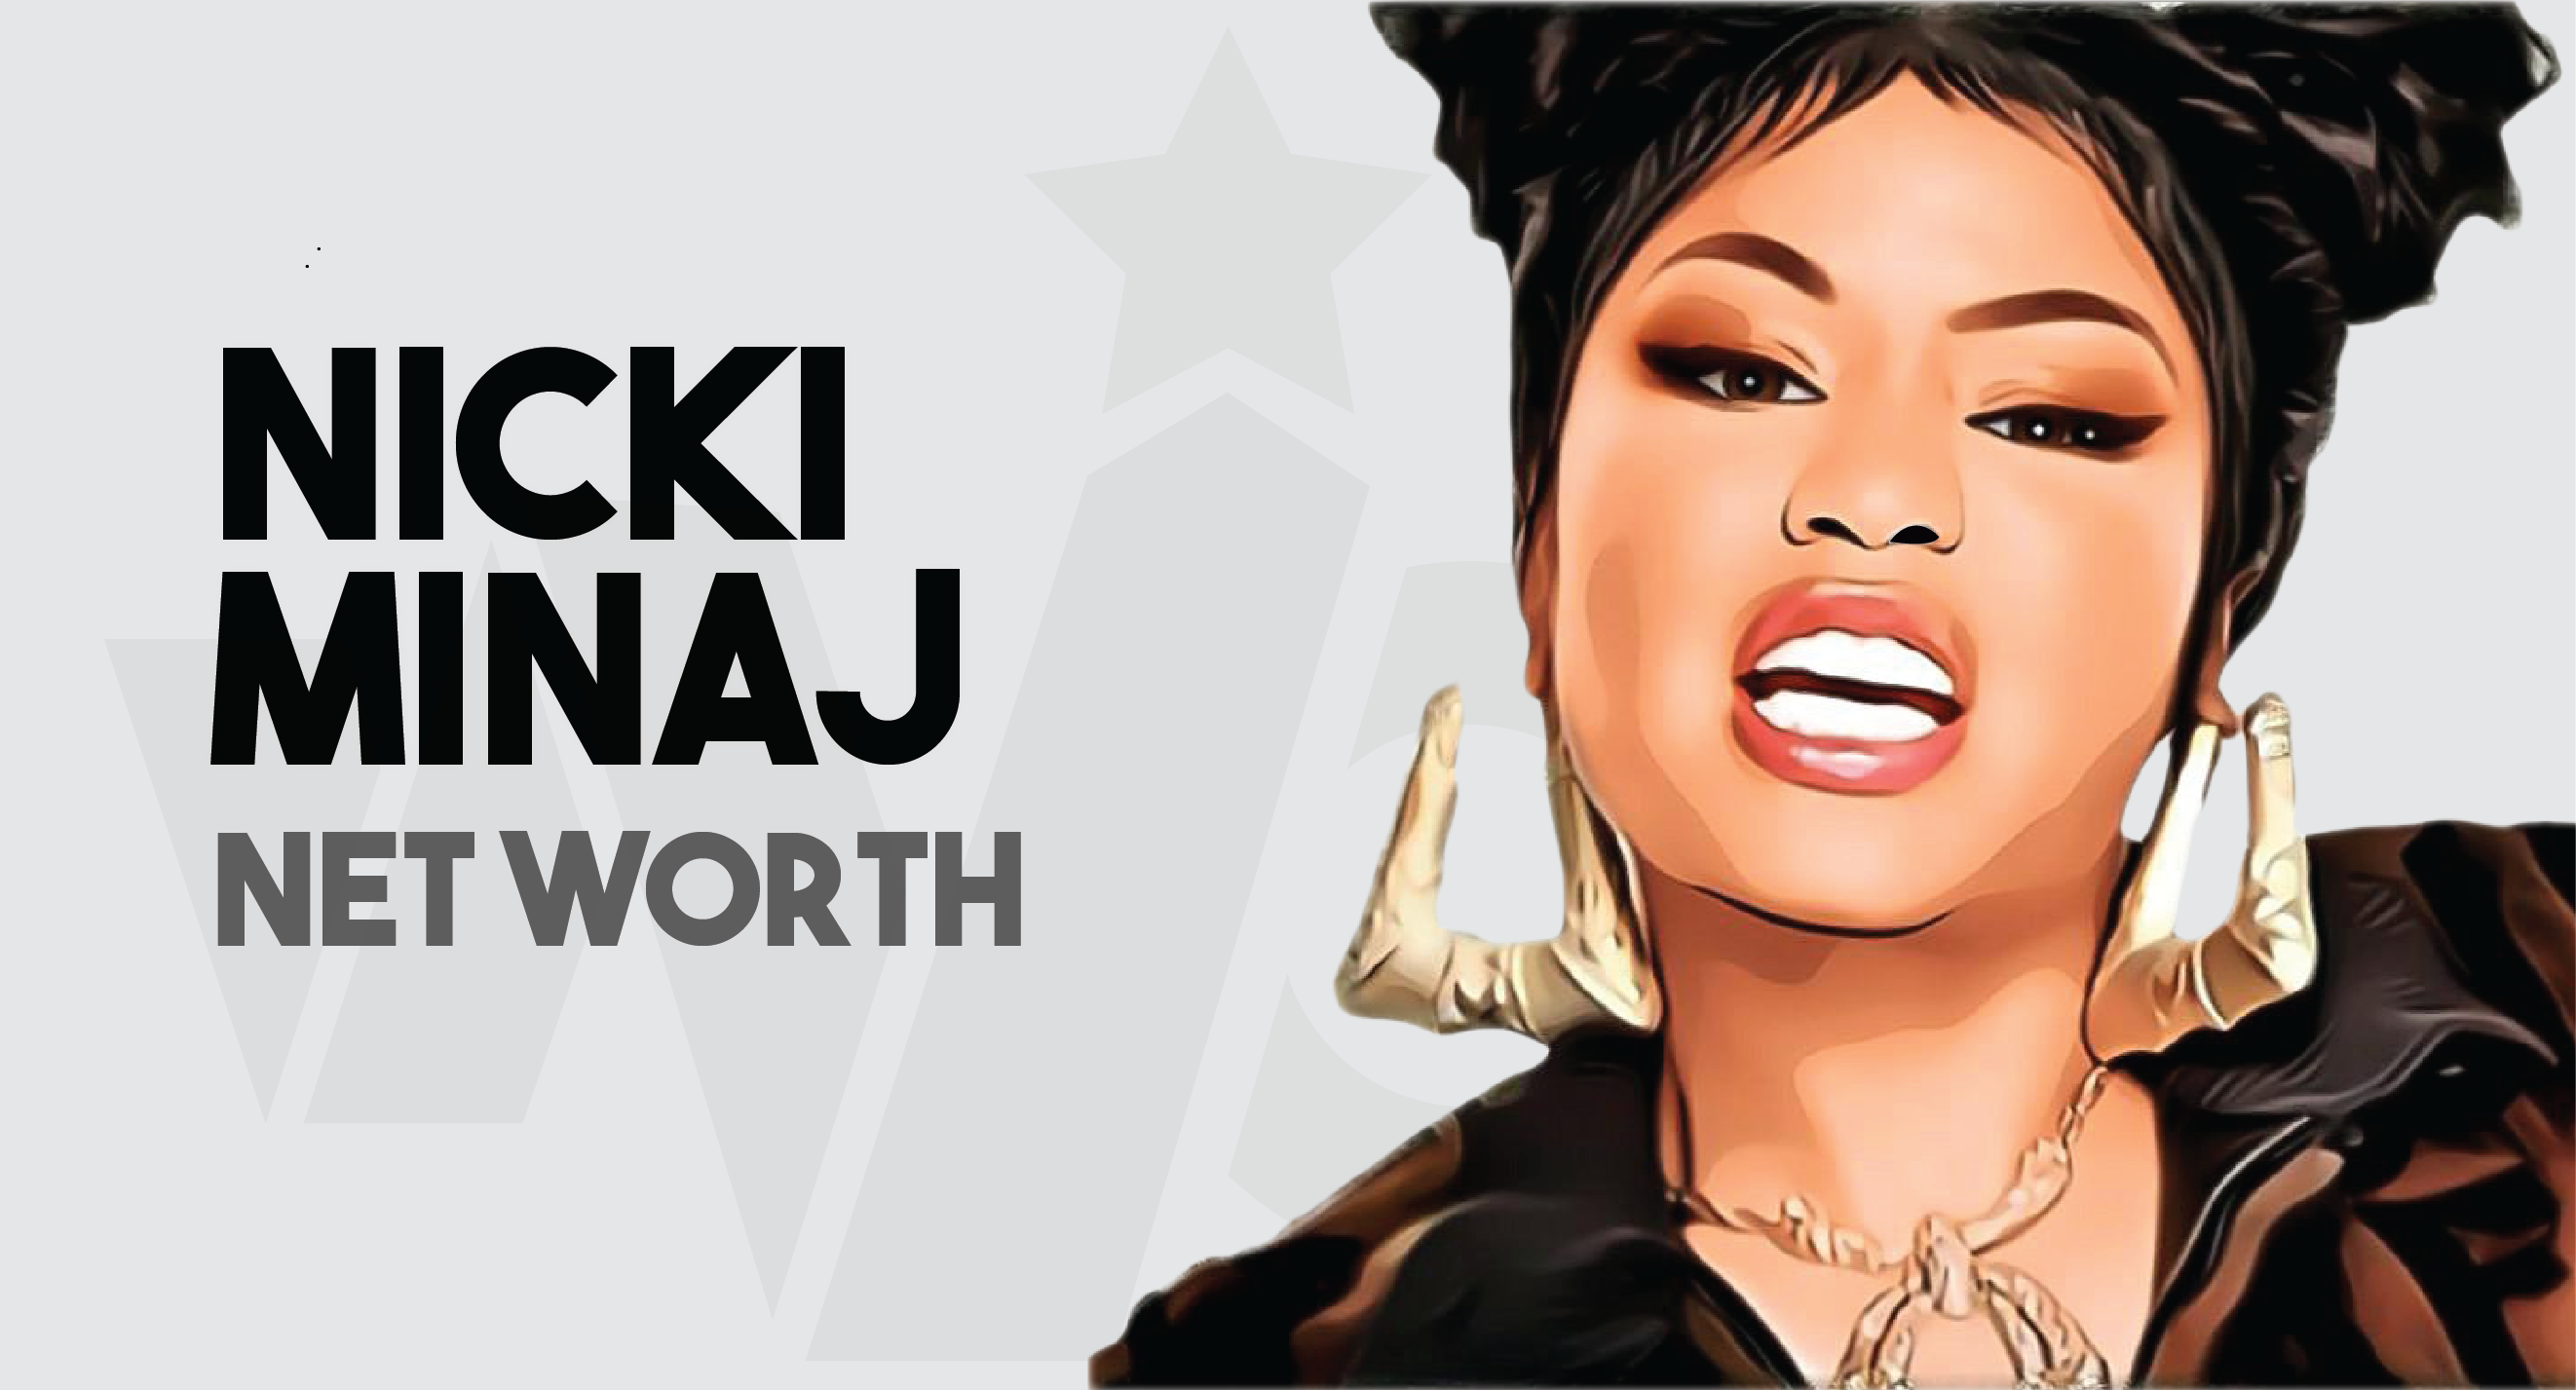 Nicki Minaj_Net worth